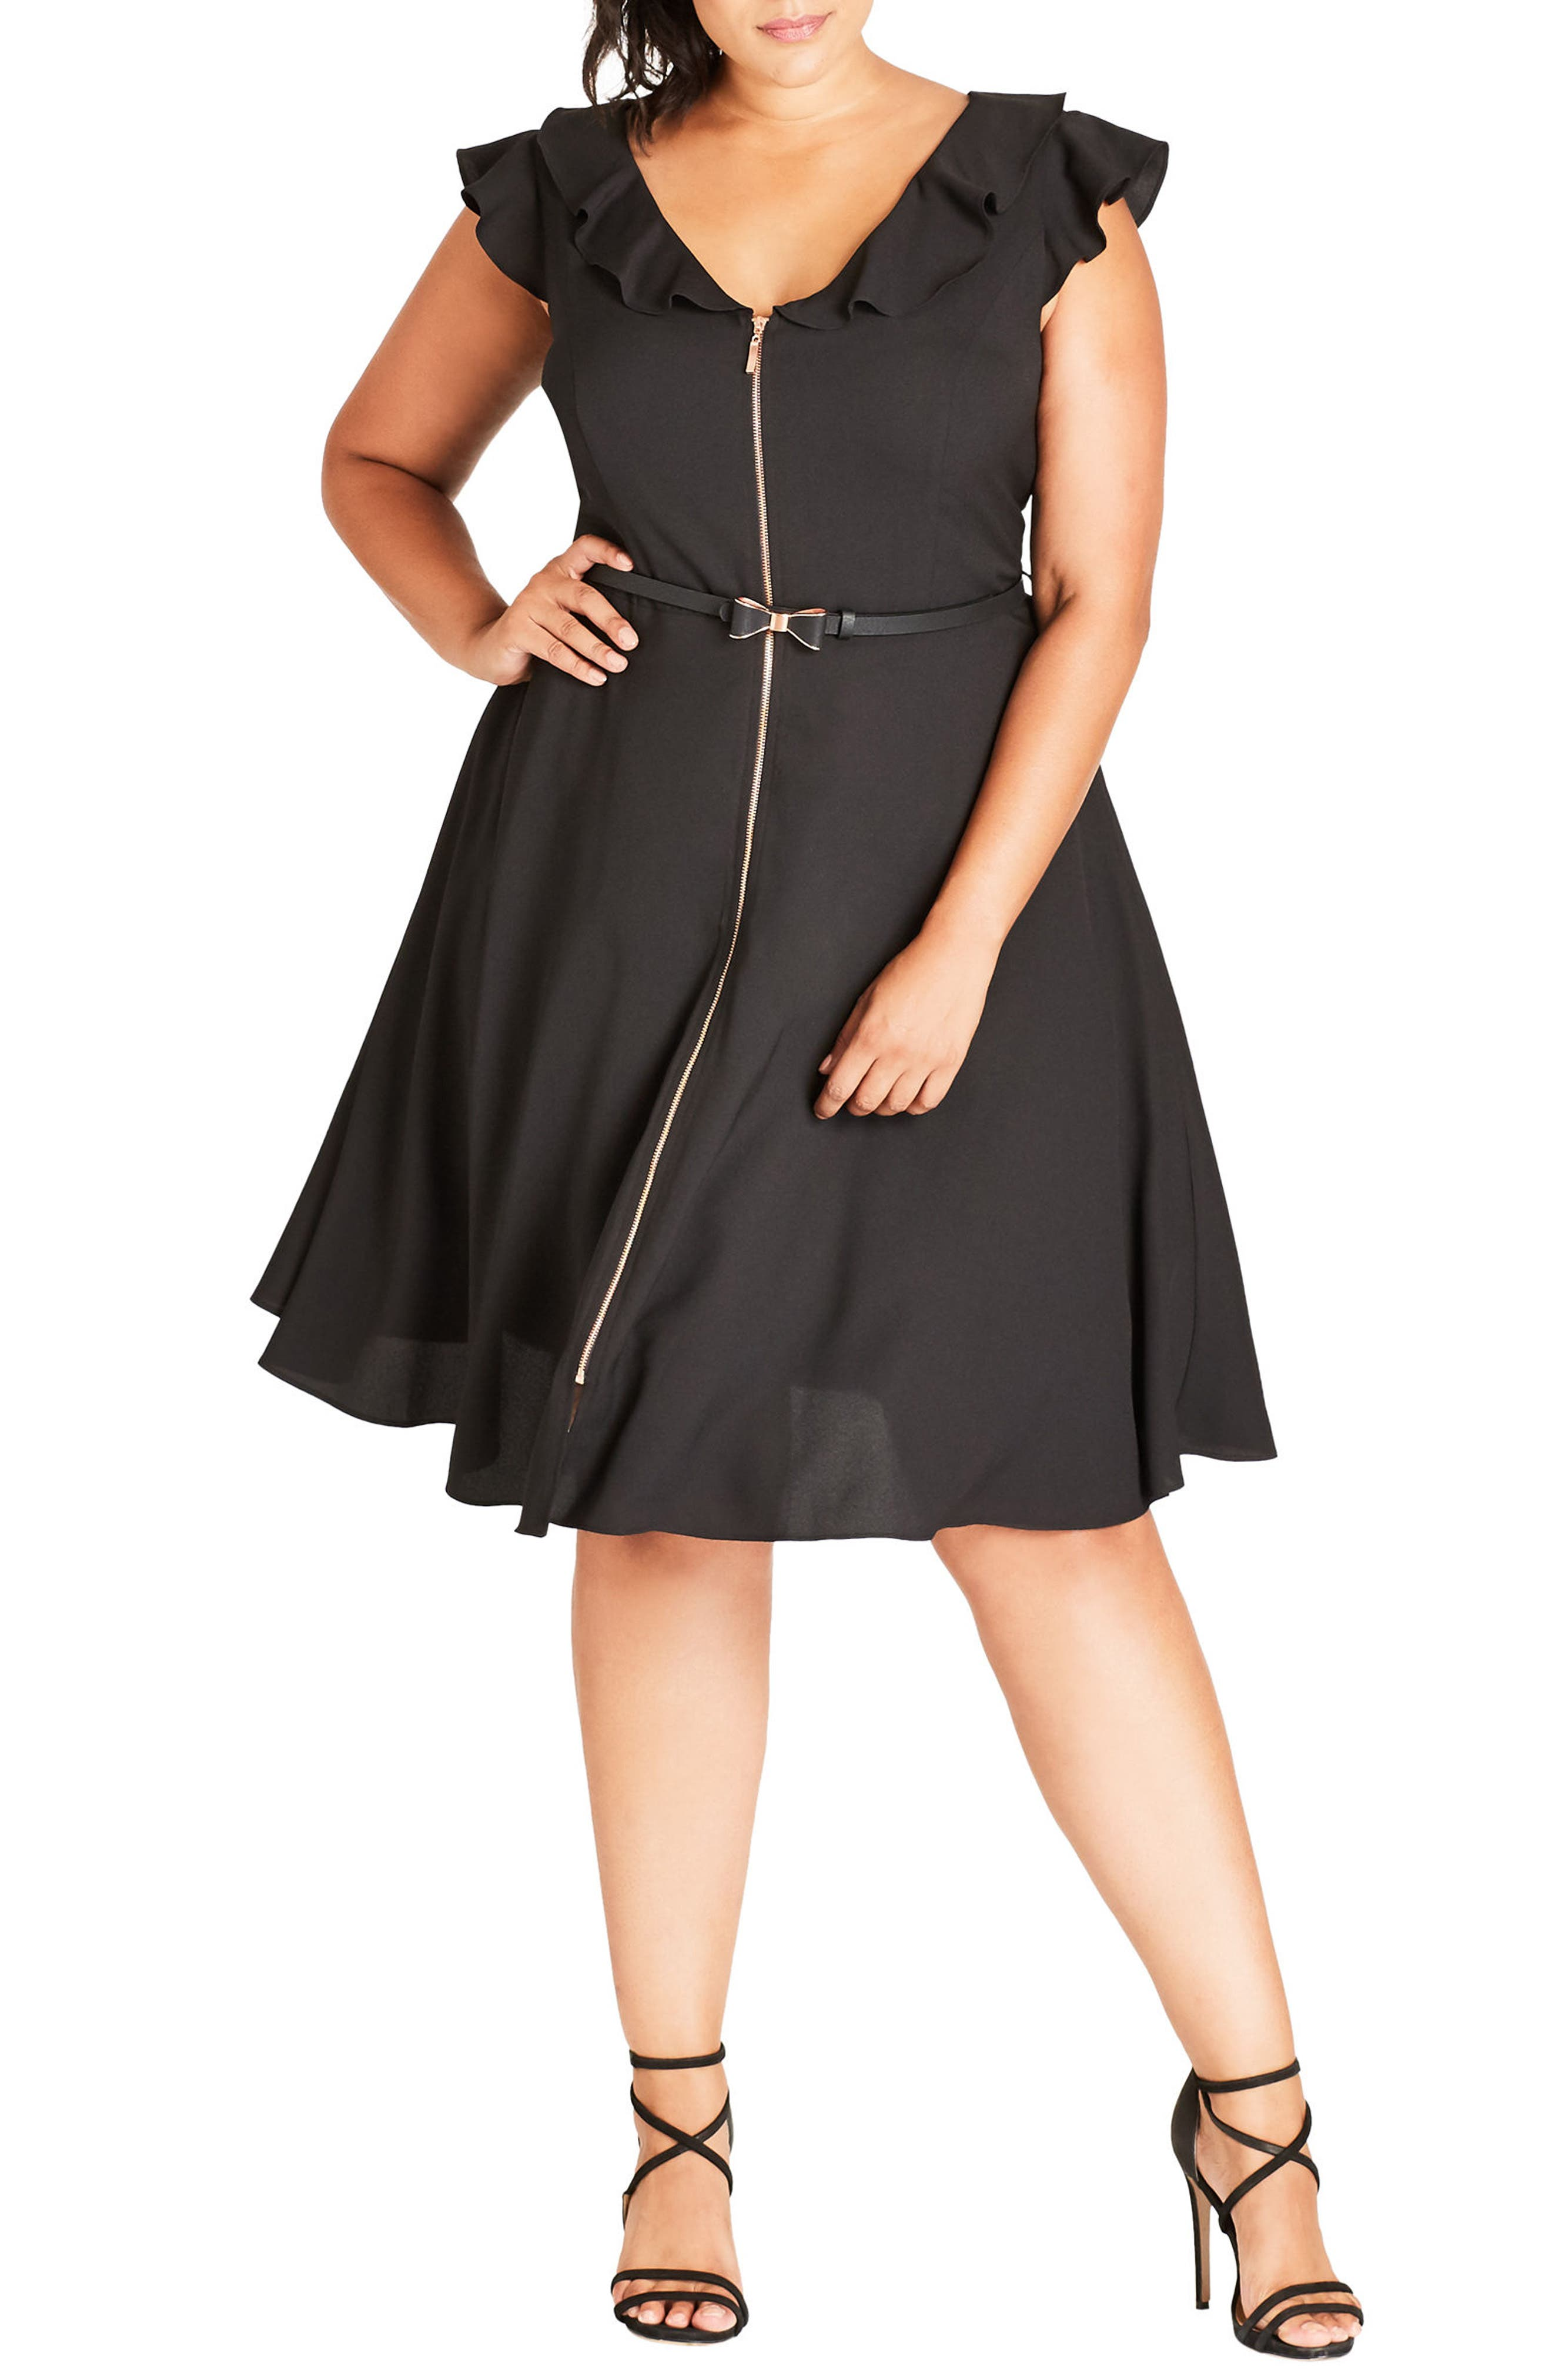 Main Image - City Chic Pretty Bow Fit & Flare Dress (Plus Size)